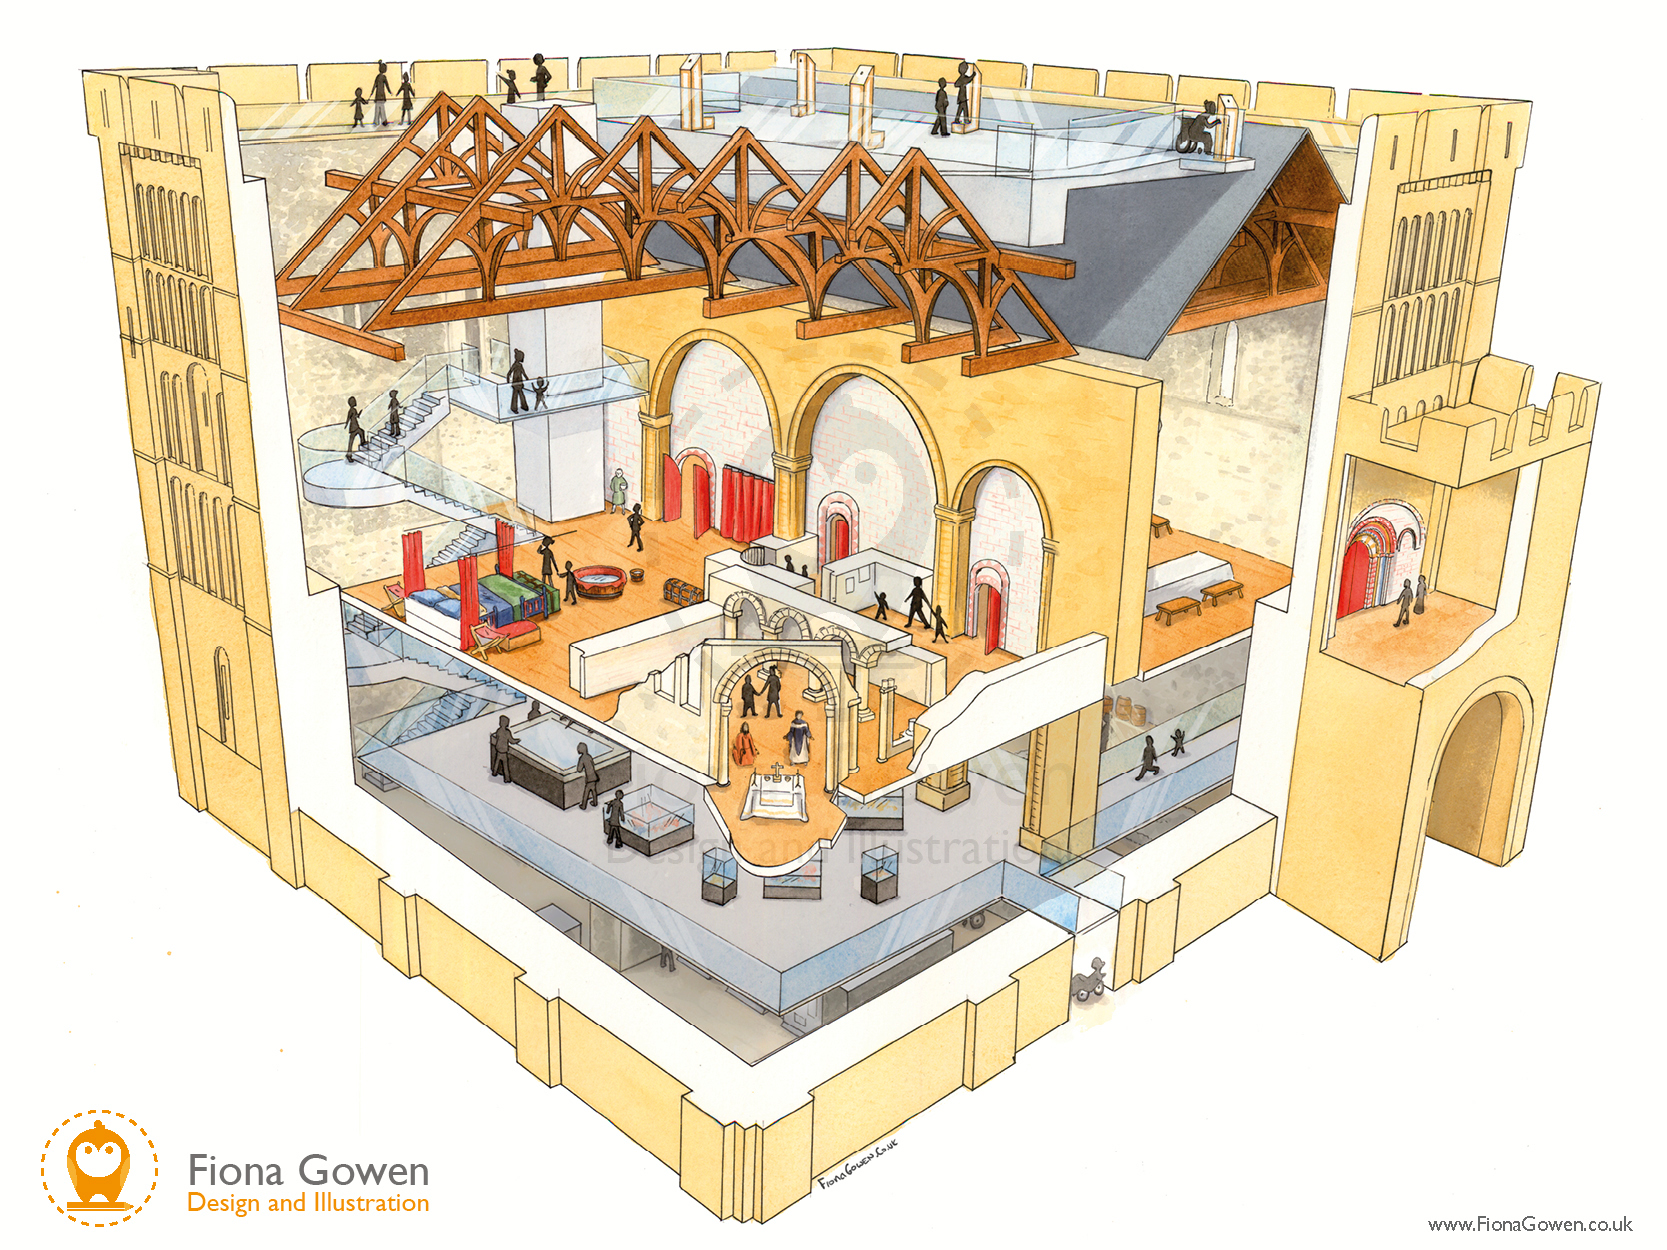 An artist's impression cut-through watercolour illustration of Norwich Castle, showing the proposed new floor levels and redevelopment of the castle keep.